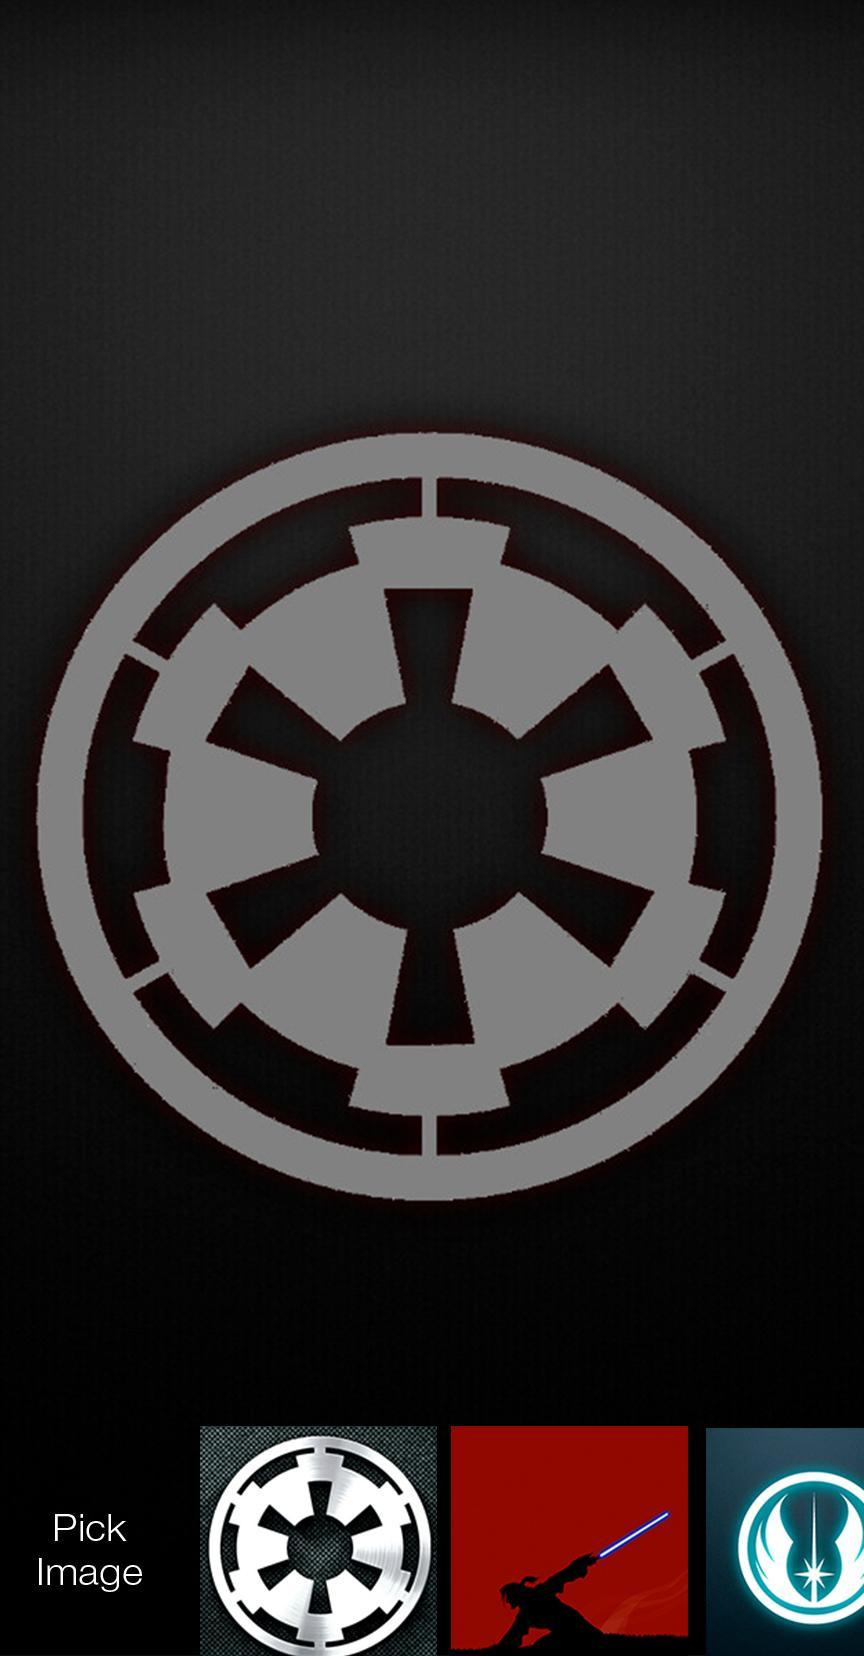 Jedi Order Galaxy Wars Star Wallpaper Lock App For Android Apk Download